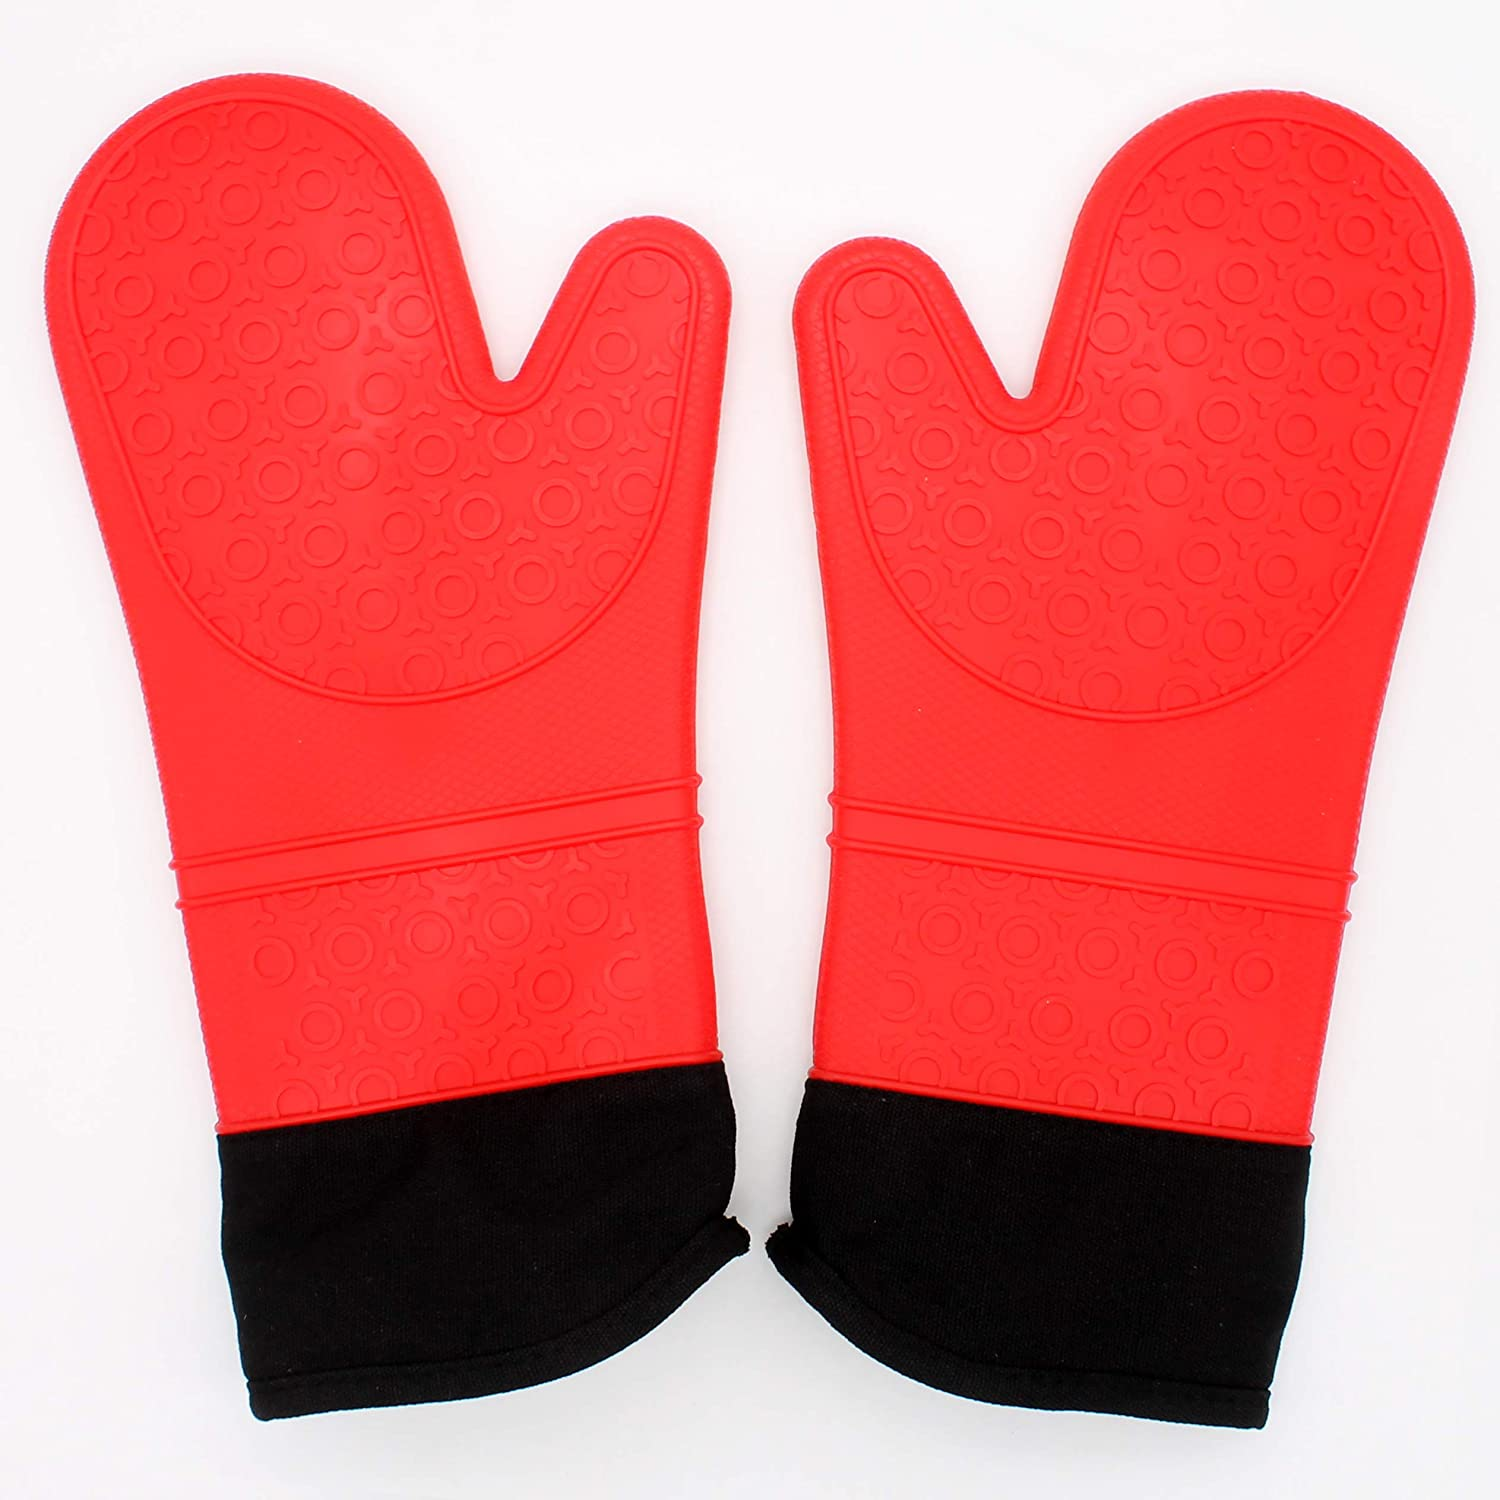 XIE Heat Resistant Silicone Hot Oven Mitts for 500F with Waterproof,1 Pair of Extra Long Size Kitchen Oven Gloves with Soft Cotton Lining for BBQ Cooking,Baking Grilling Microwave Red